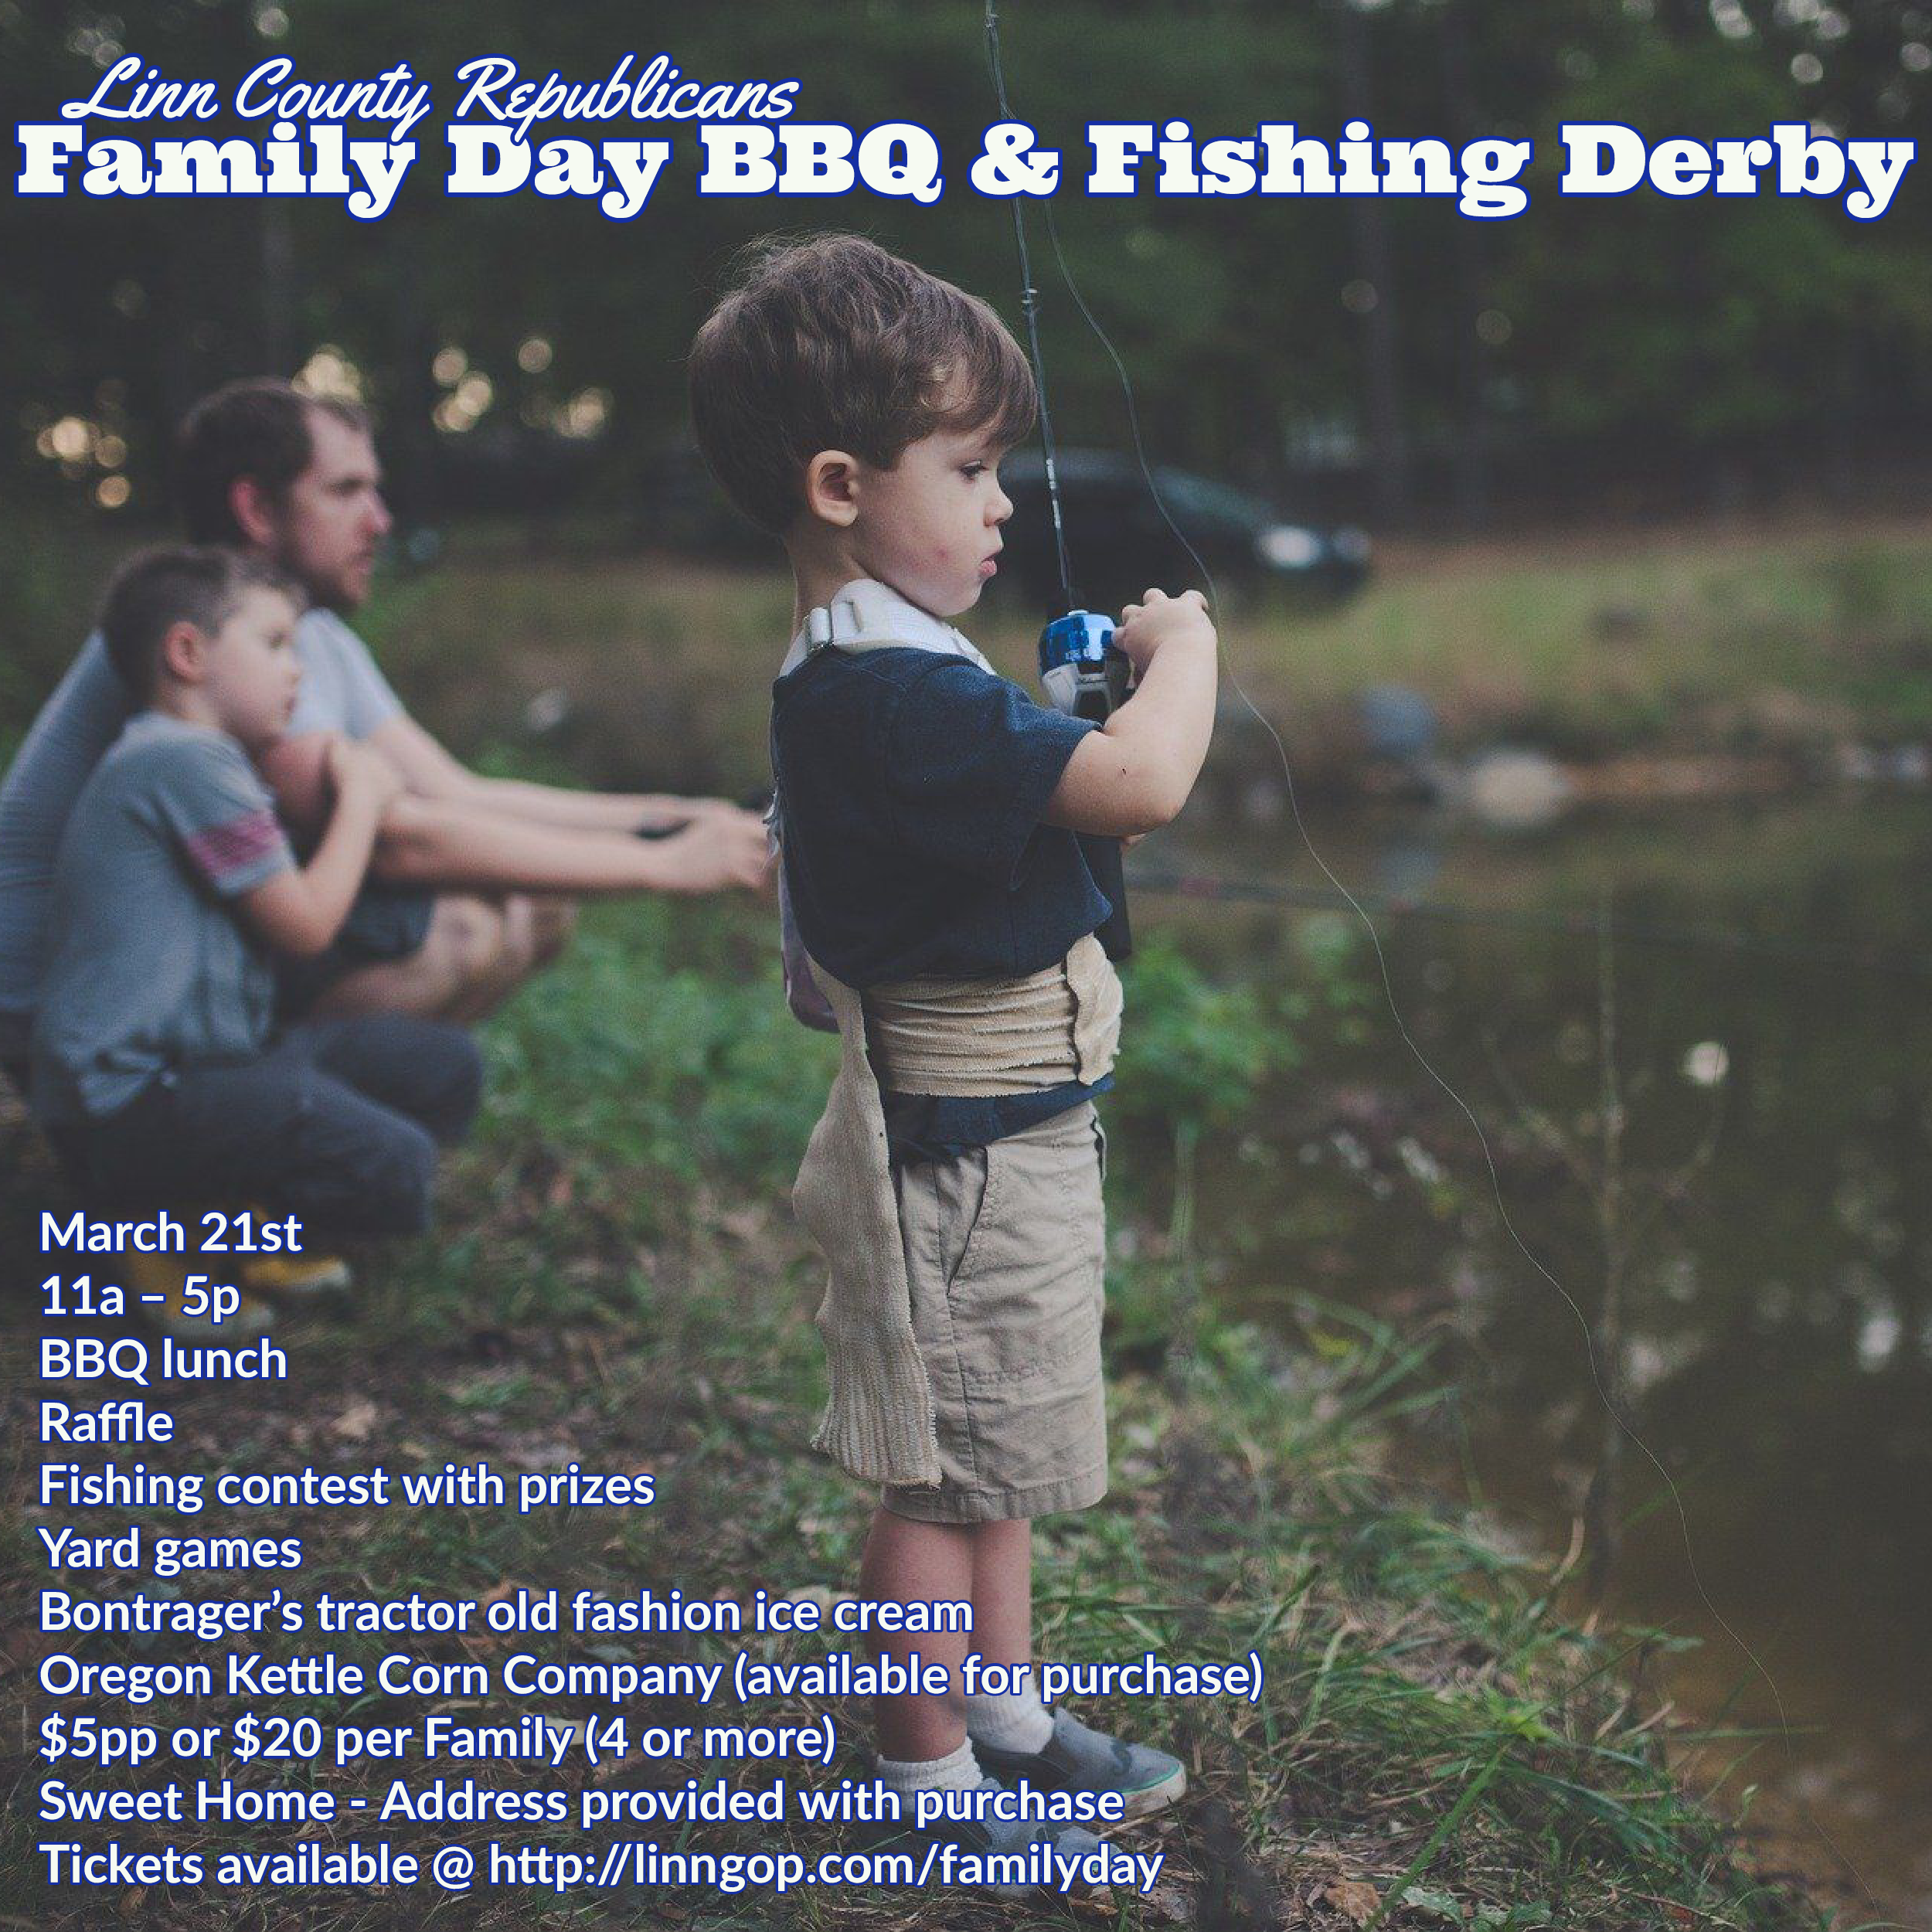 Family_Day_BBQ___Fishing_Derby_Flyer_Final.png